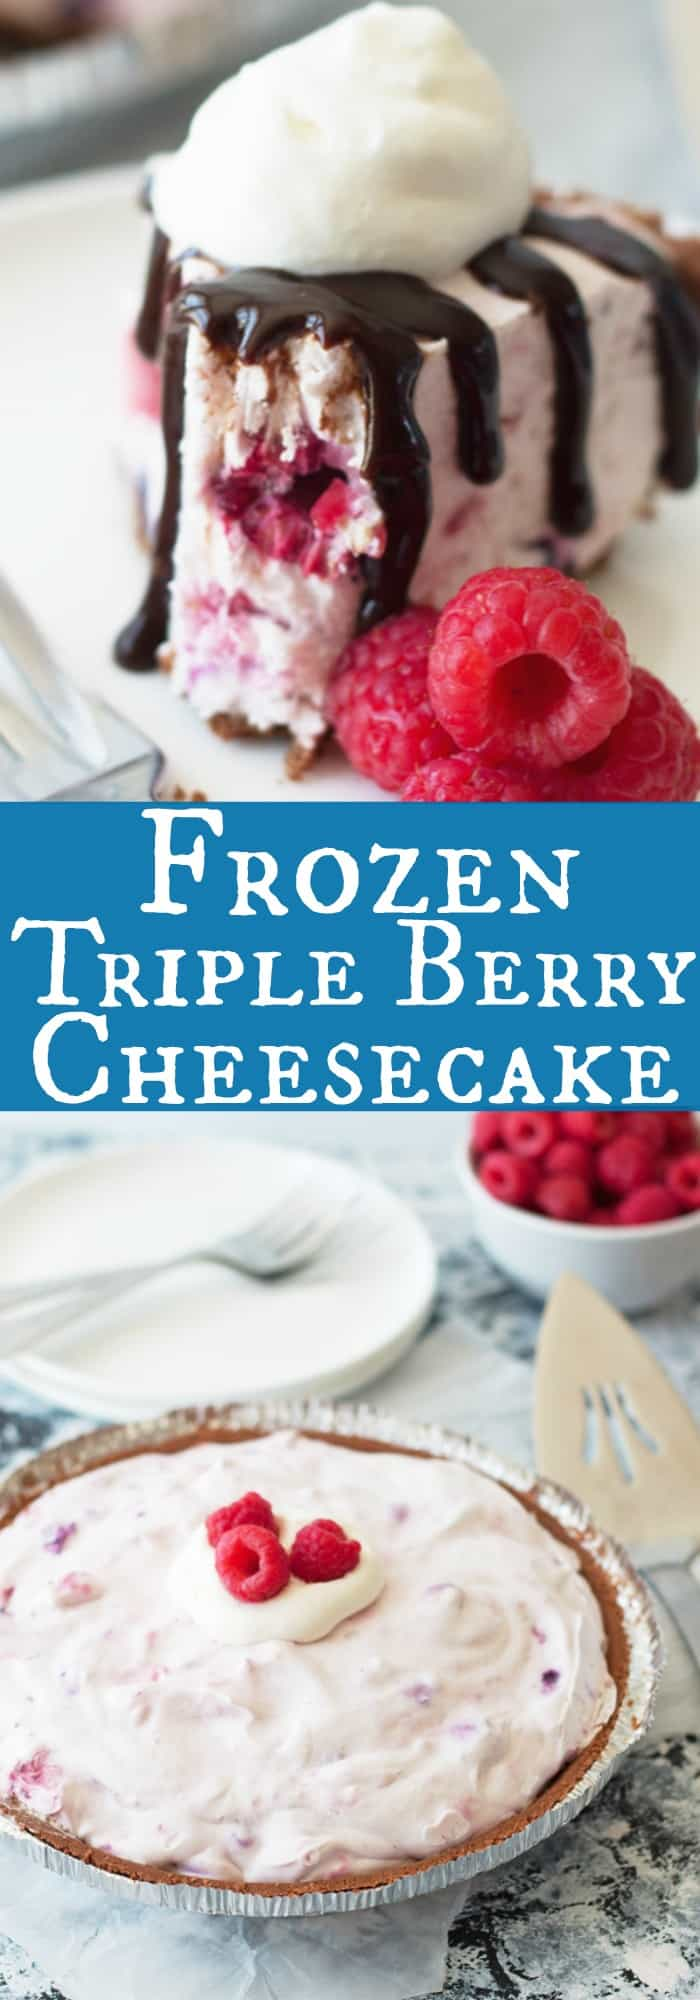 Easy to make, no bake, cool and creamy Frozen Triple Berry Cheesecake recipe. Perfect for cooling off this summer! | www.countrysidecravings.com